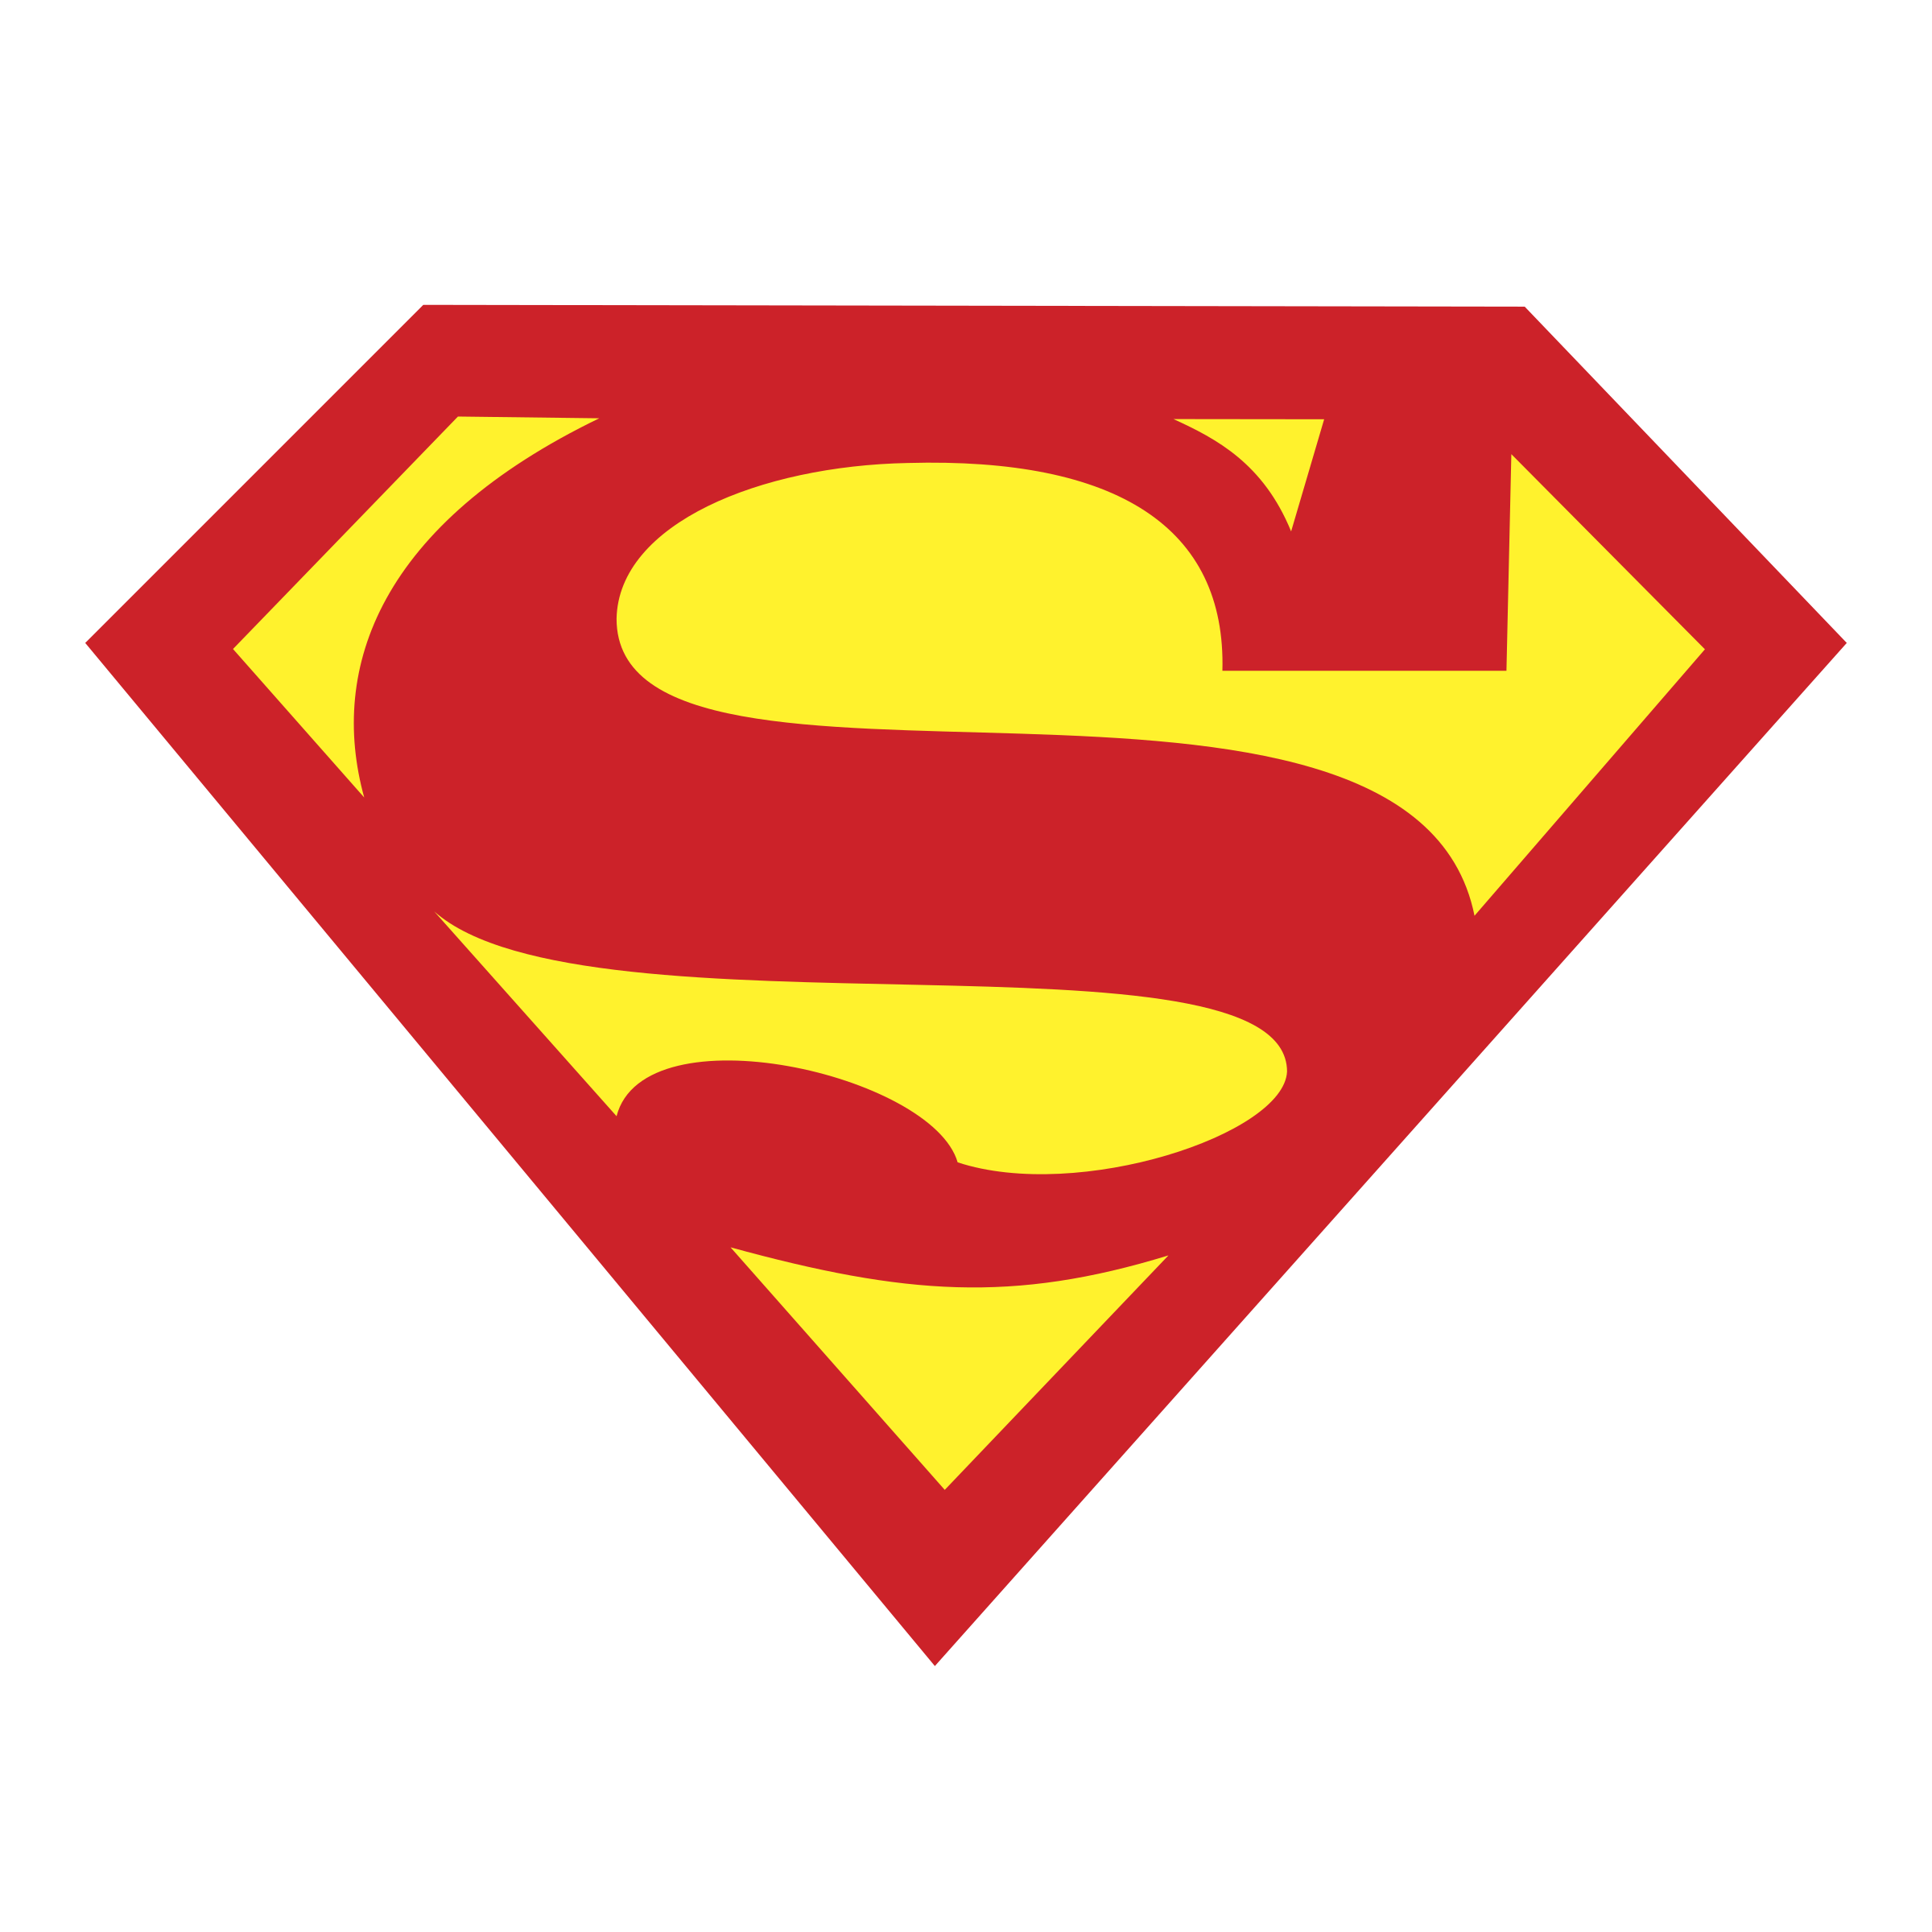 Superman symbol clipart svg royalty free library Superman Logo PNG Transparent Images Free Download Clip Art - carwad.net svg royalty free library